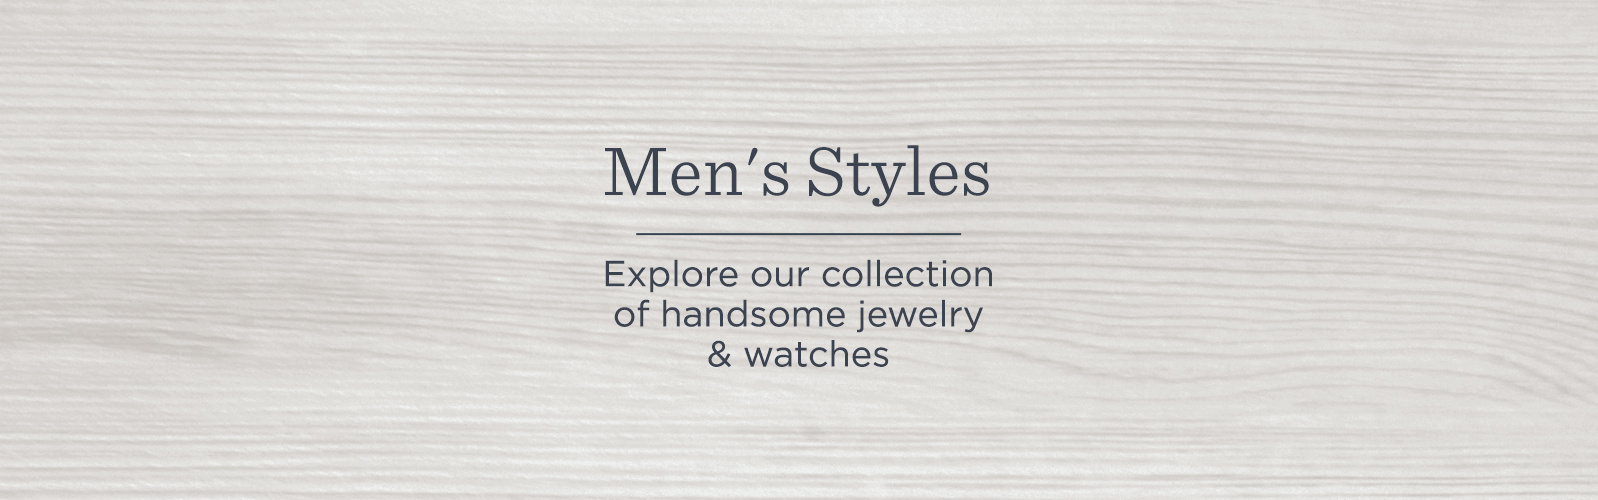 Men's Styles  Explore our collection of handsome jewelry & watches